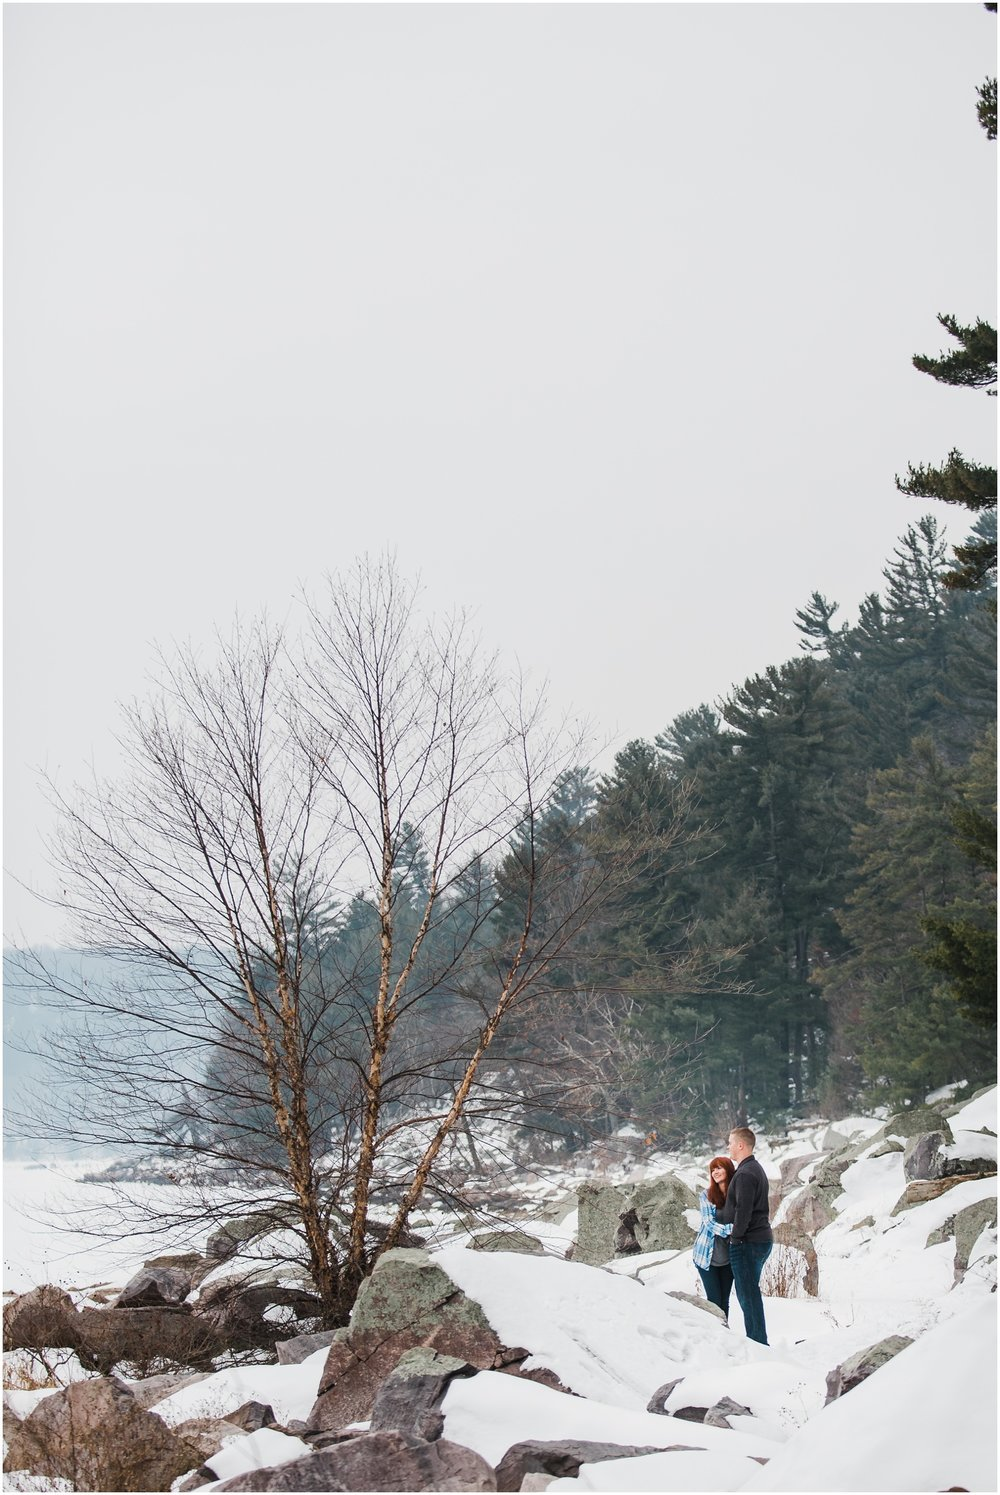 Devils-Lake-Baraboo-Wisconsin-Engagement-Photographer-Lindsey-And-Cody-Engaged-67.jpg